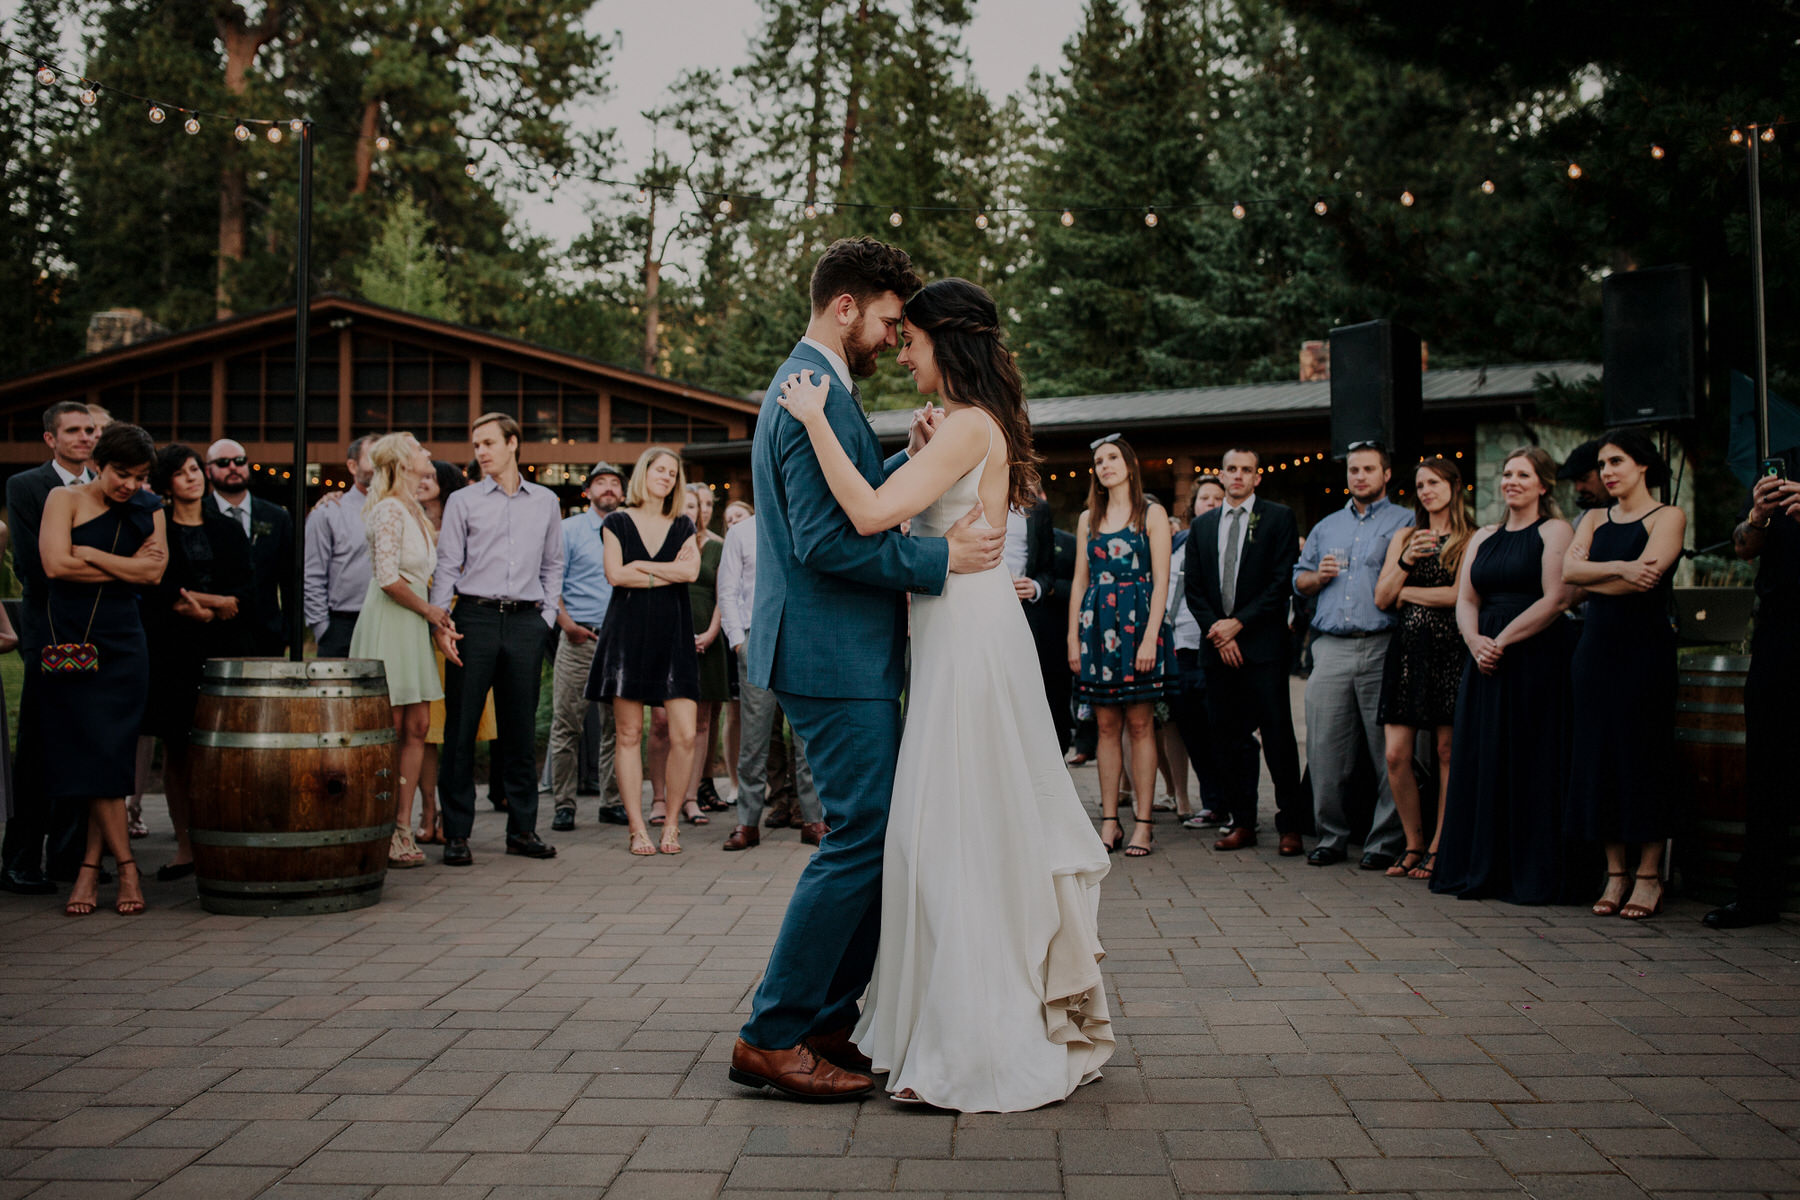 bend oregon wedding venues for outdoor weddings